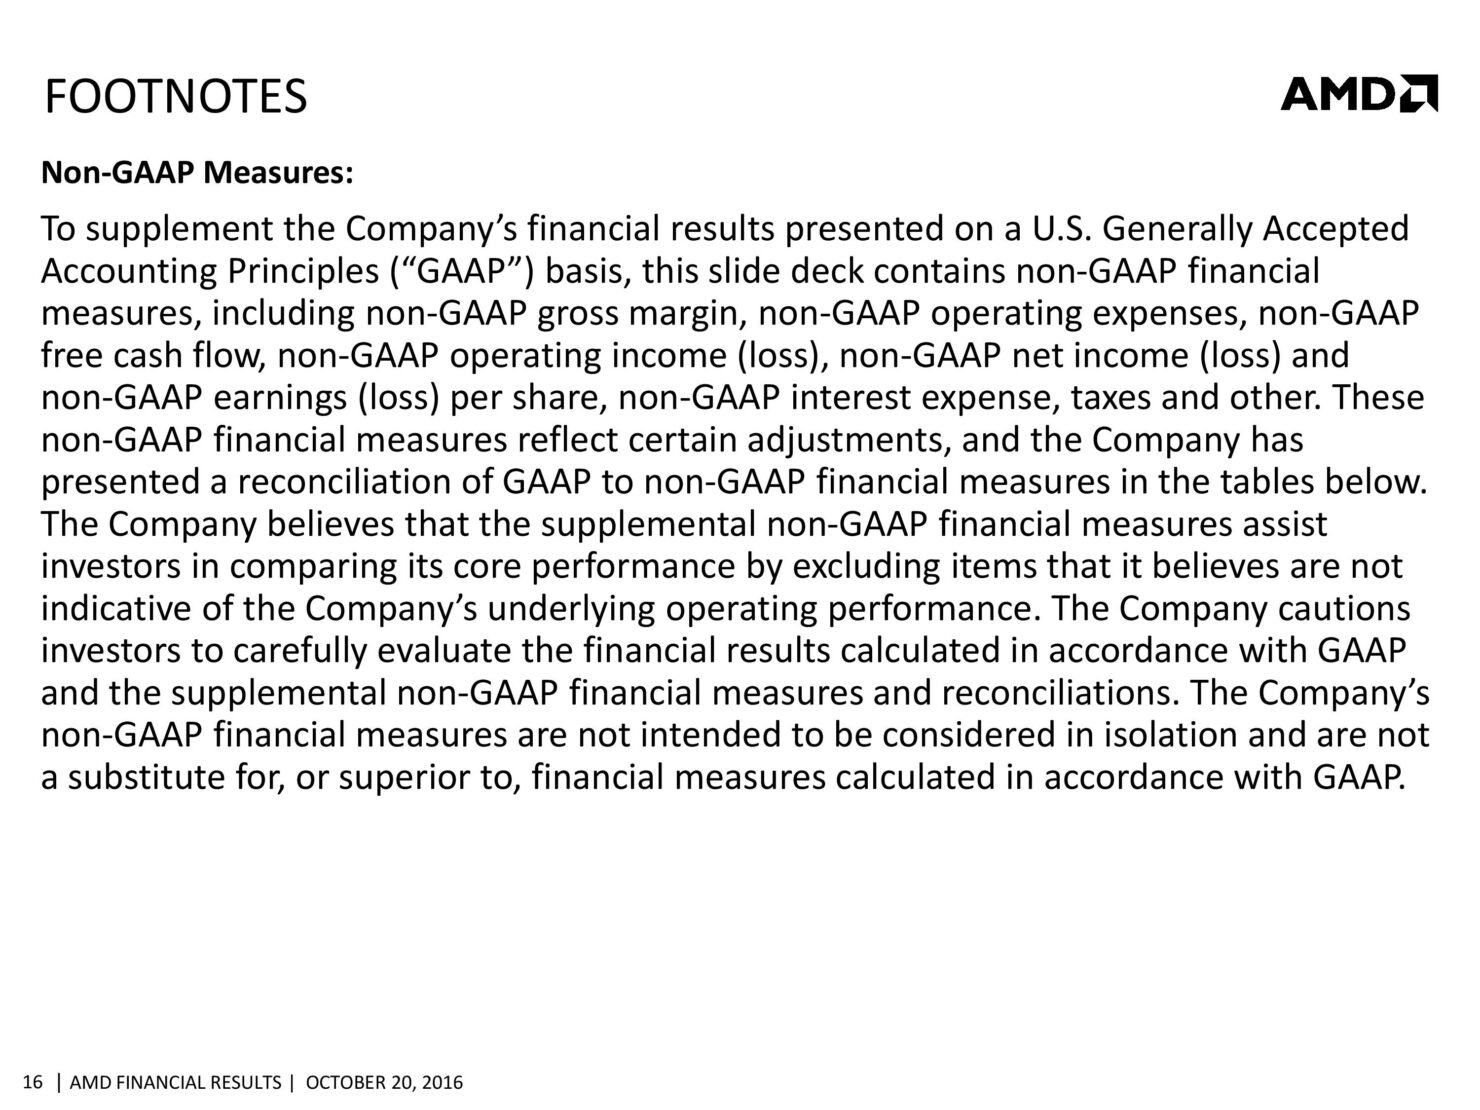 amd-cfo-commentary-slides-q3-16-page-016